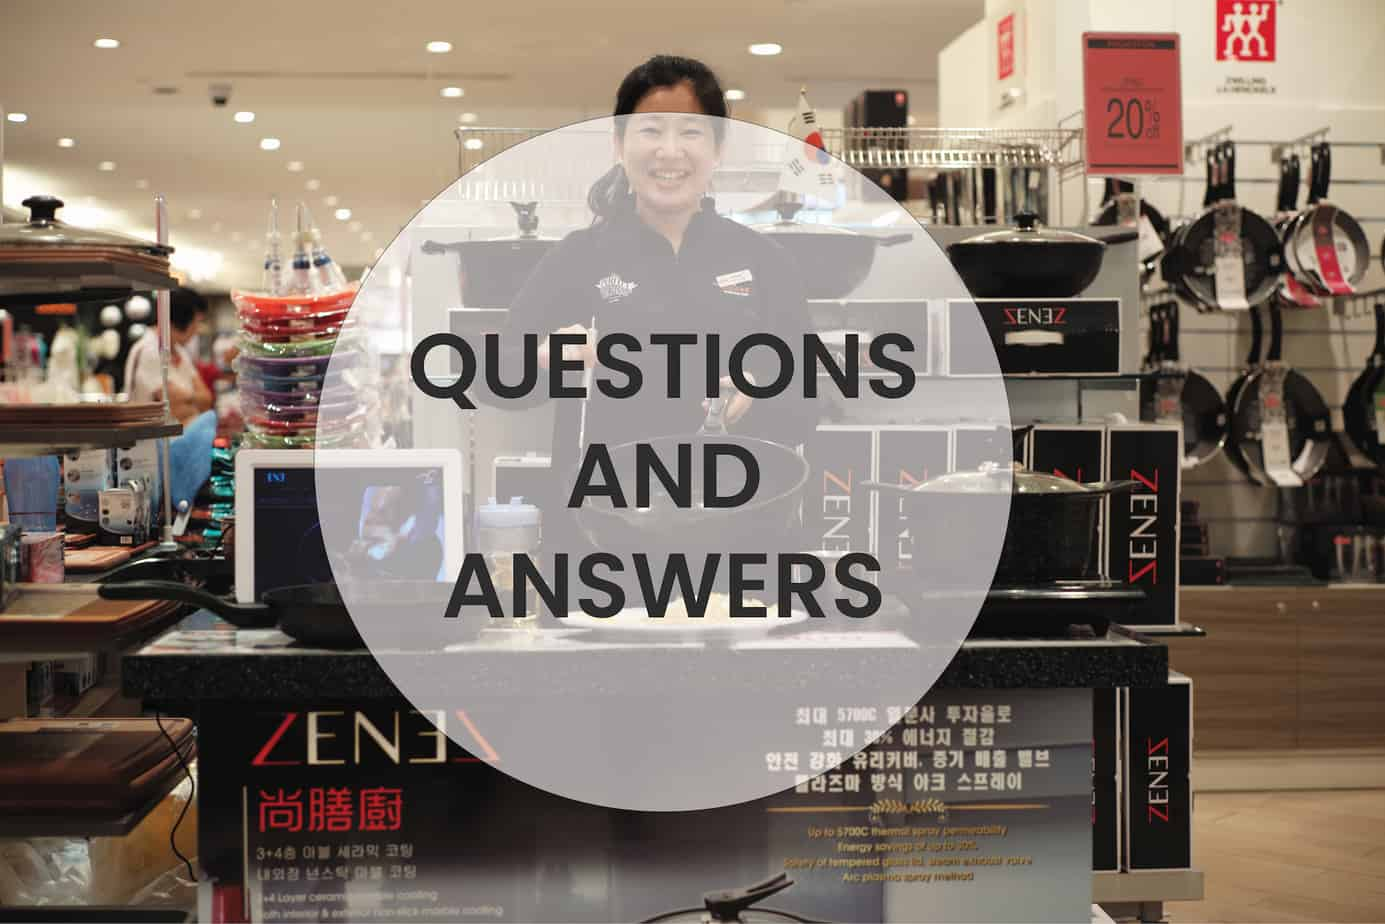 Frequently Asked Questions Regarding Zenez Cooking Wok - QNA